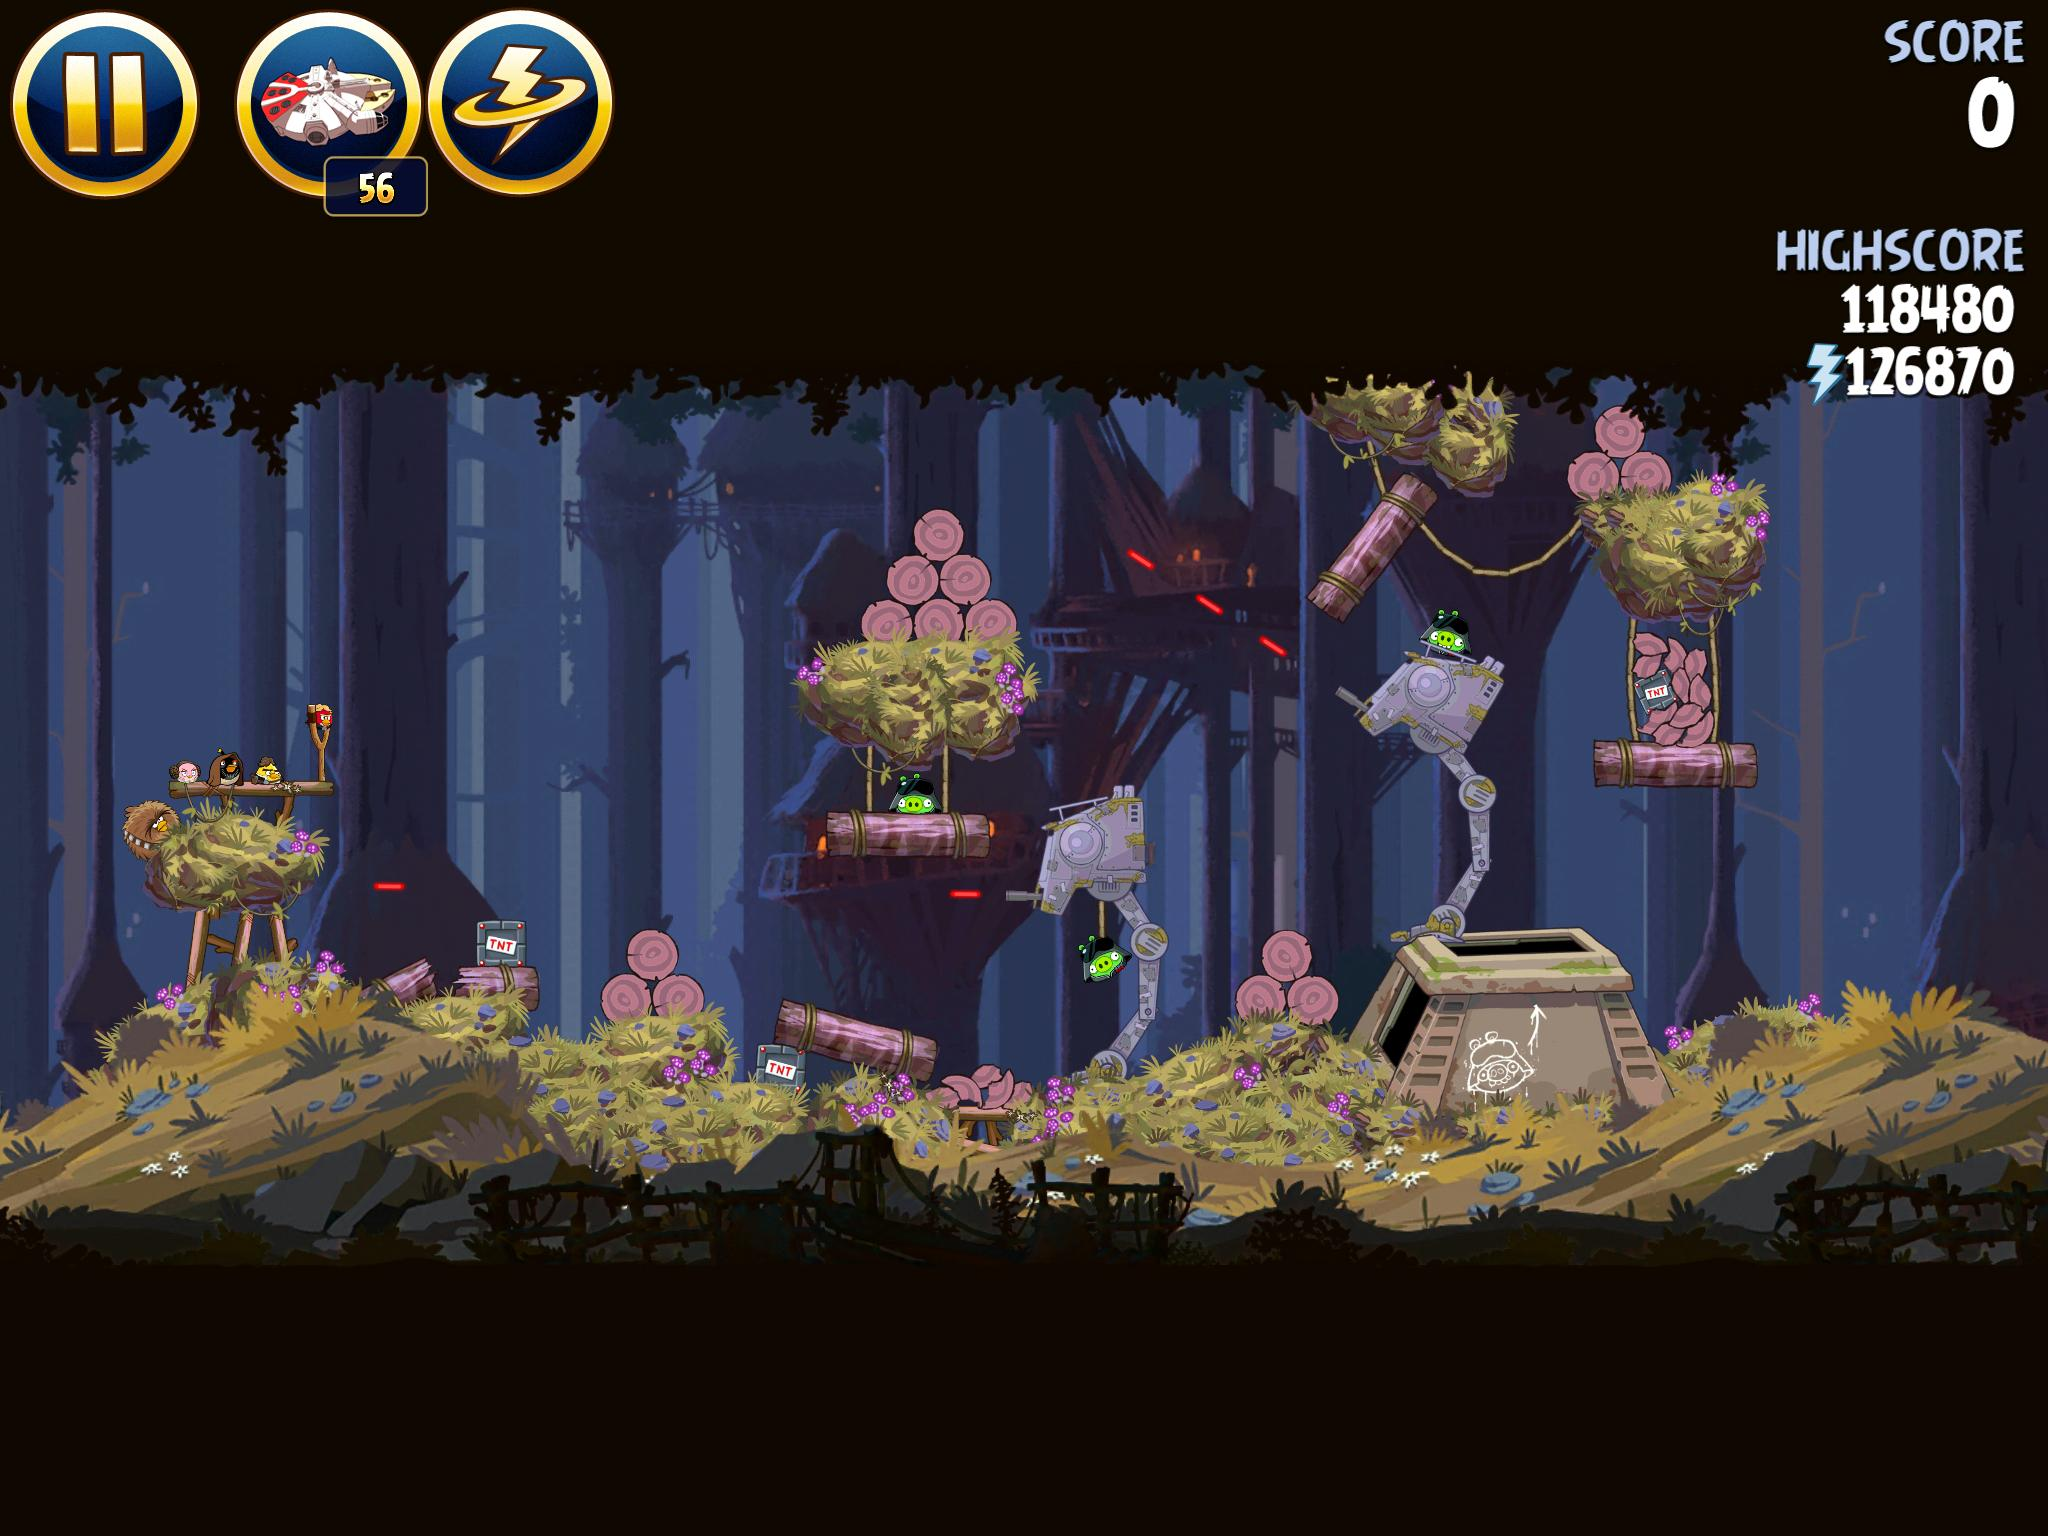 Moon of Endor 5-30 (Angry Birds Star Wars)